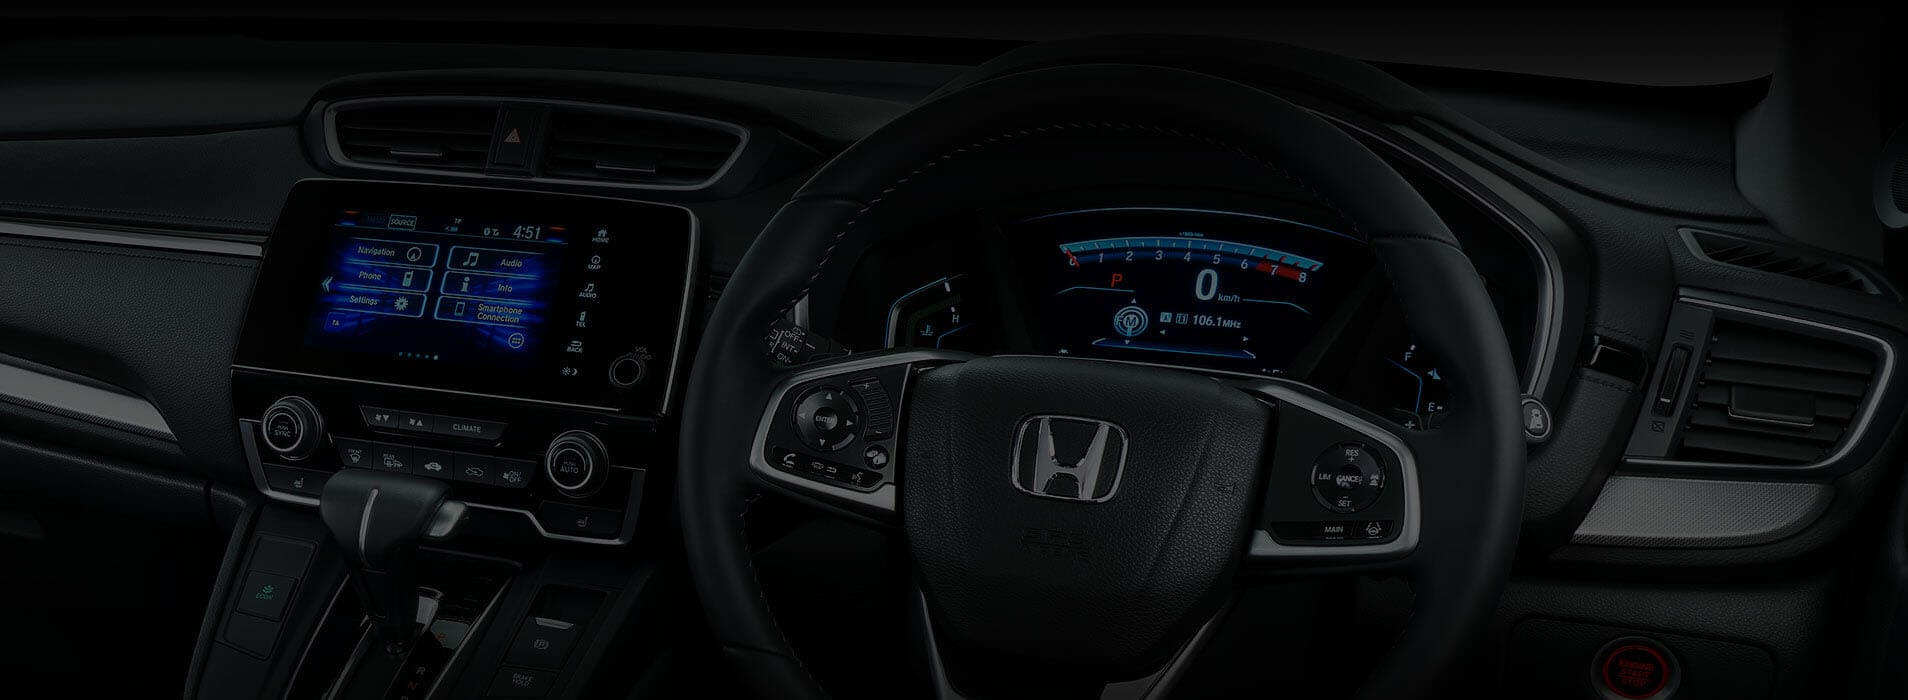 CR-V Technology